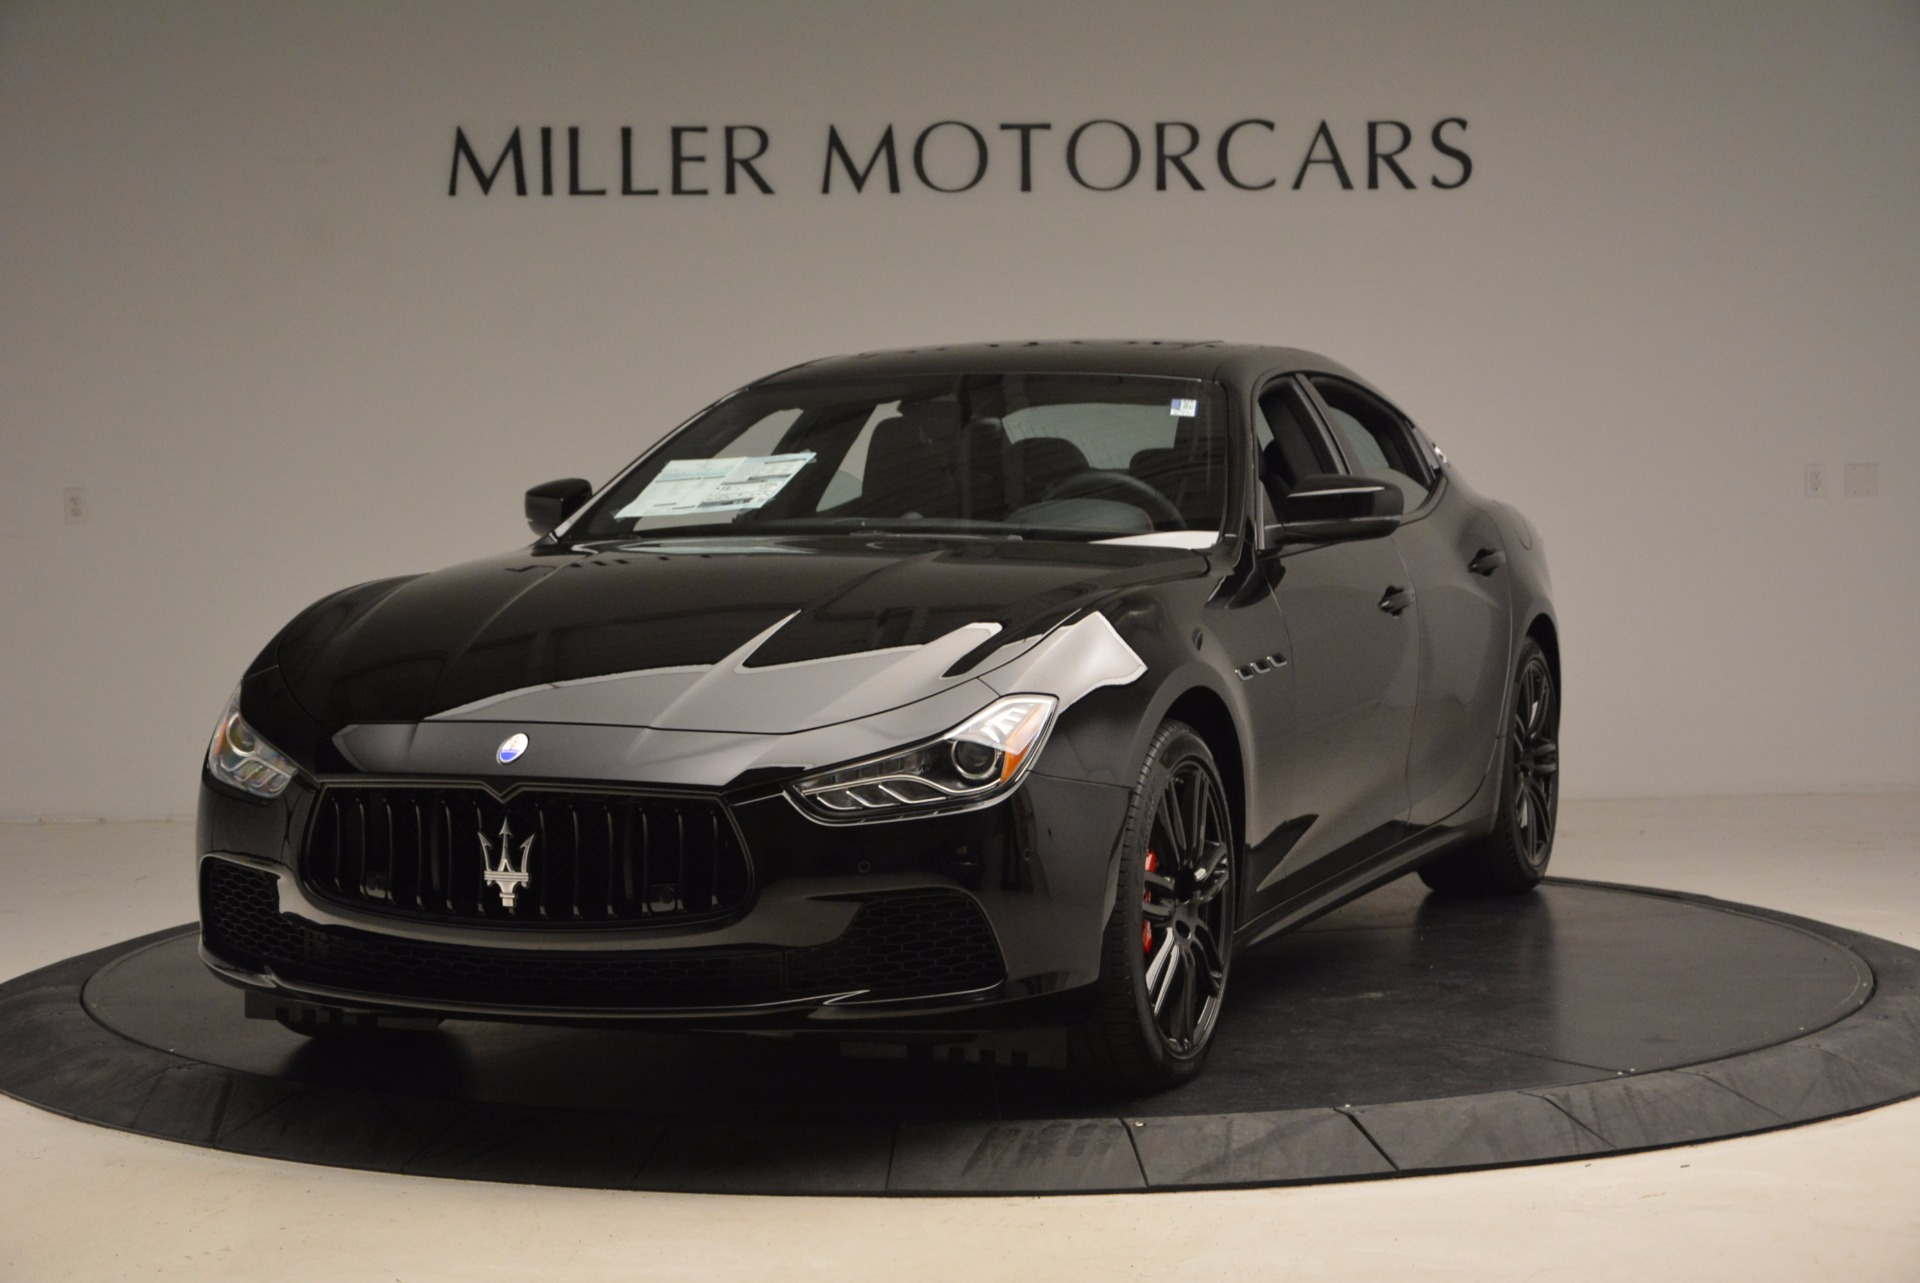 New 2017 Maserati Ghibli SQ4 S Q4 Nerissimo Edition for sale Sold at Bentley Greenwich in Greenwich CT 06830 1